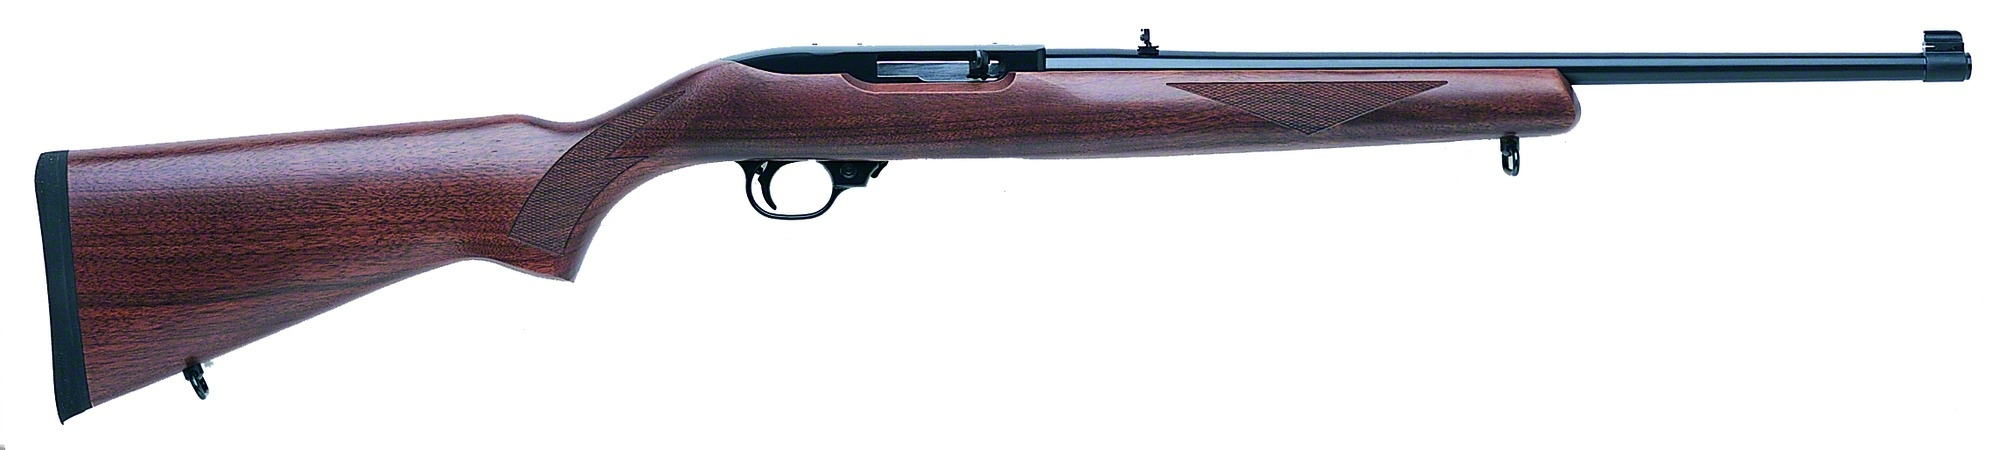 south shore sportsman inc ruger 1102 10 22 semi automatic 22 long